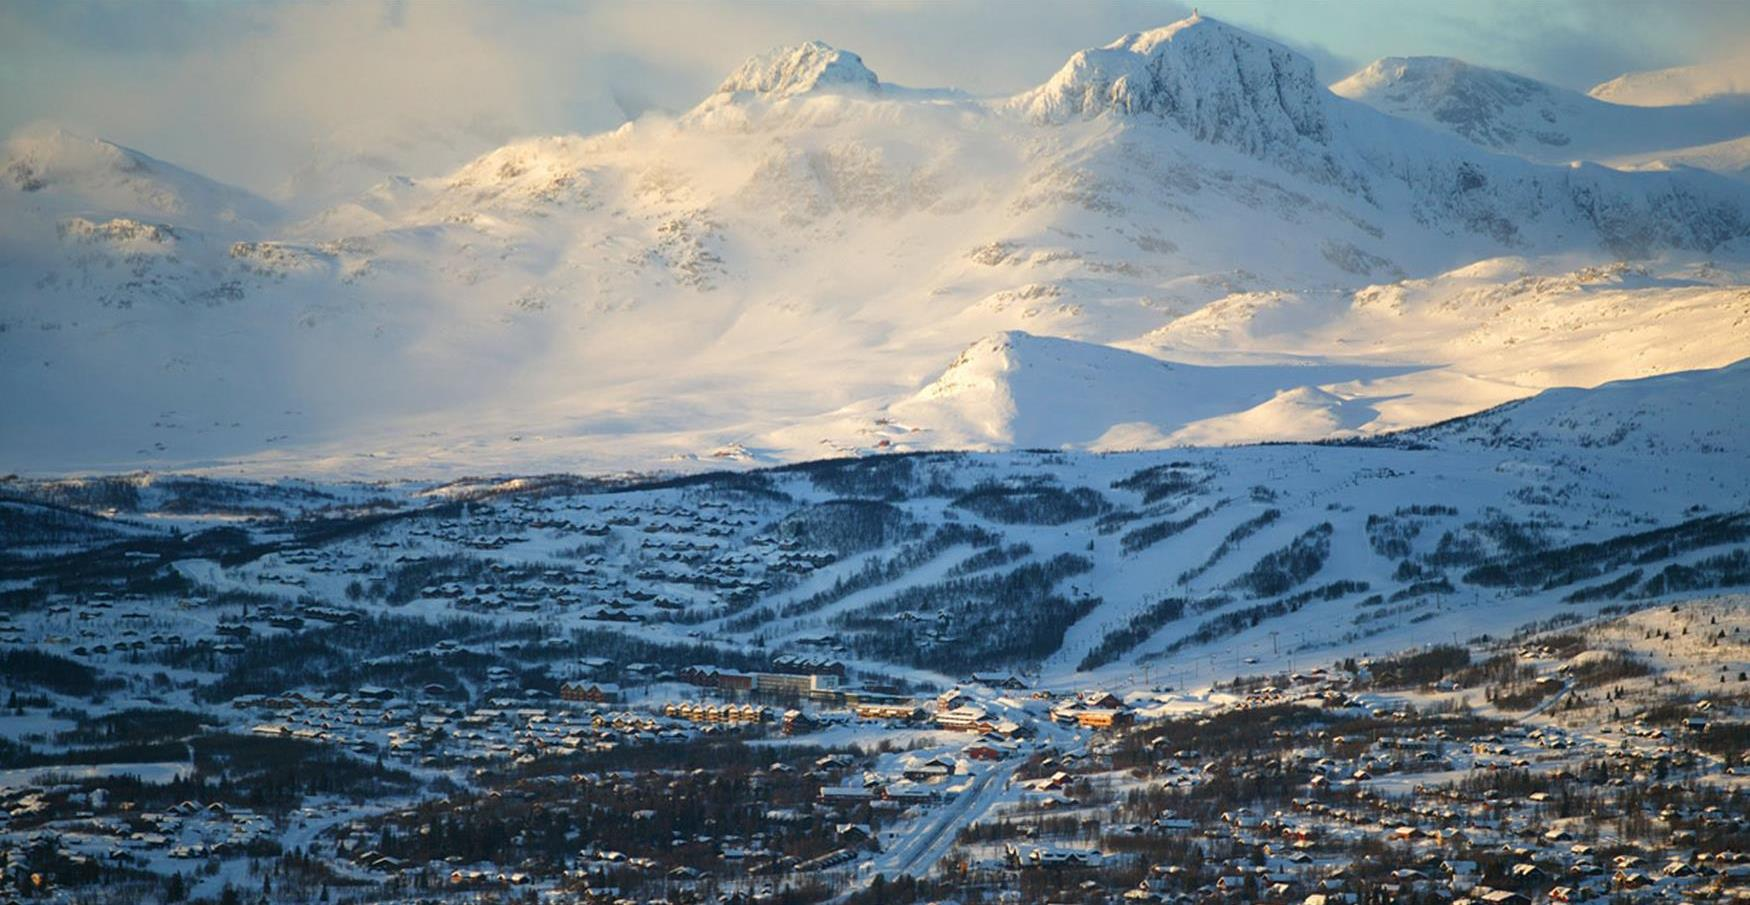 Thumbnail for Alpine skiing centres in Valdres